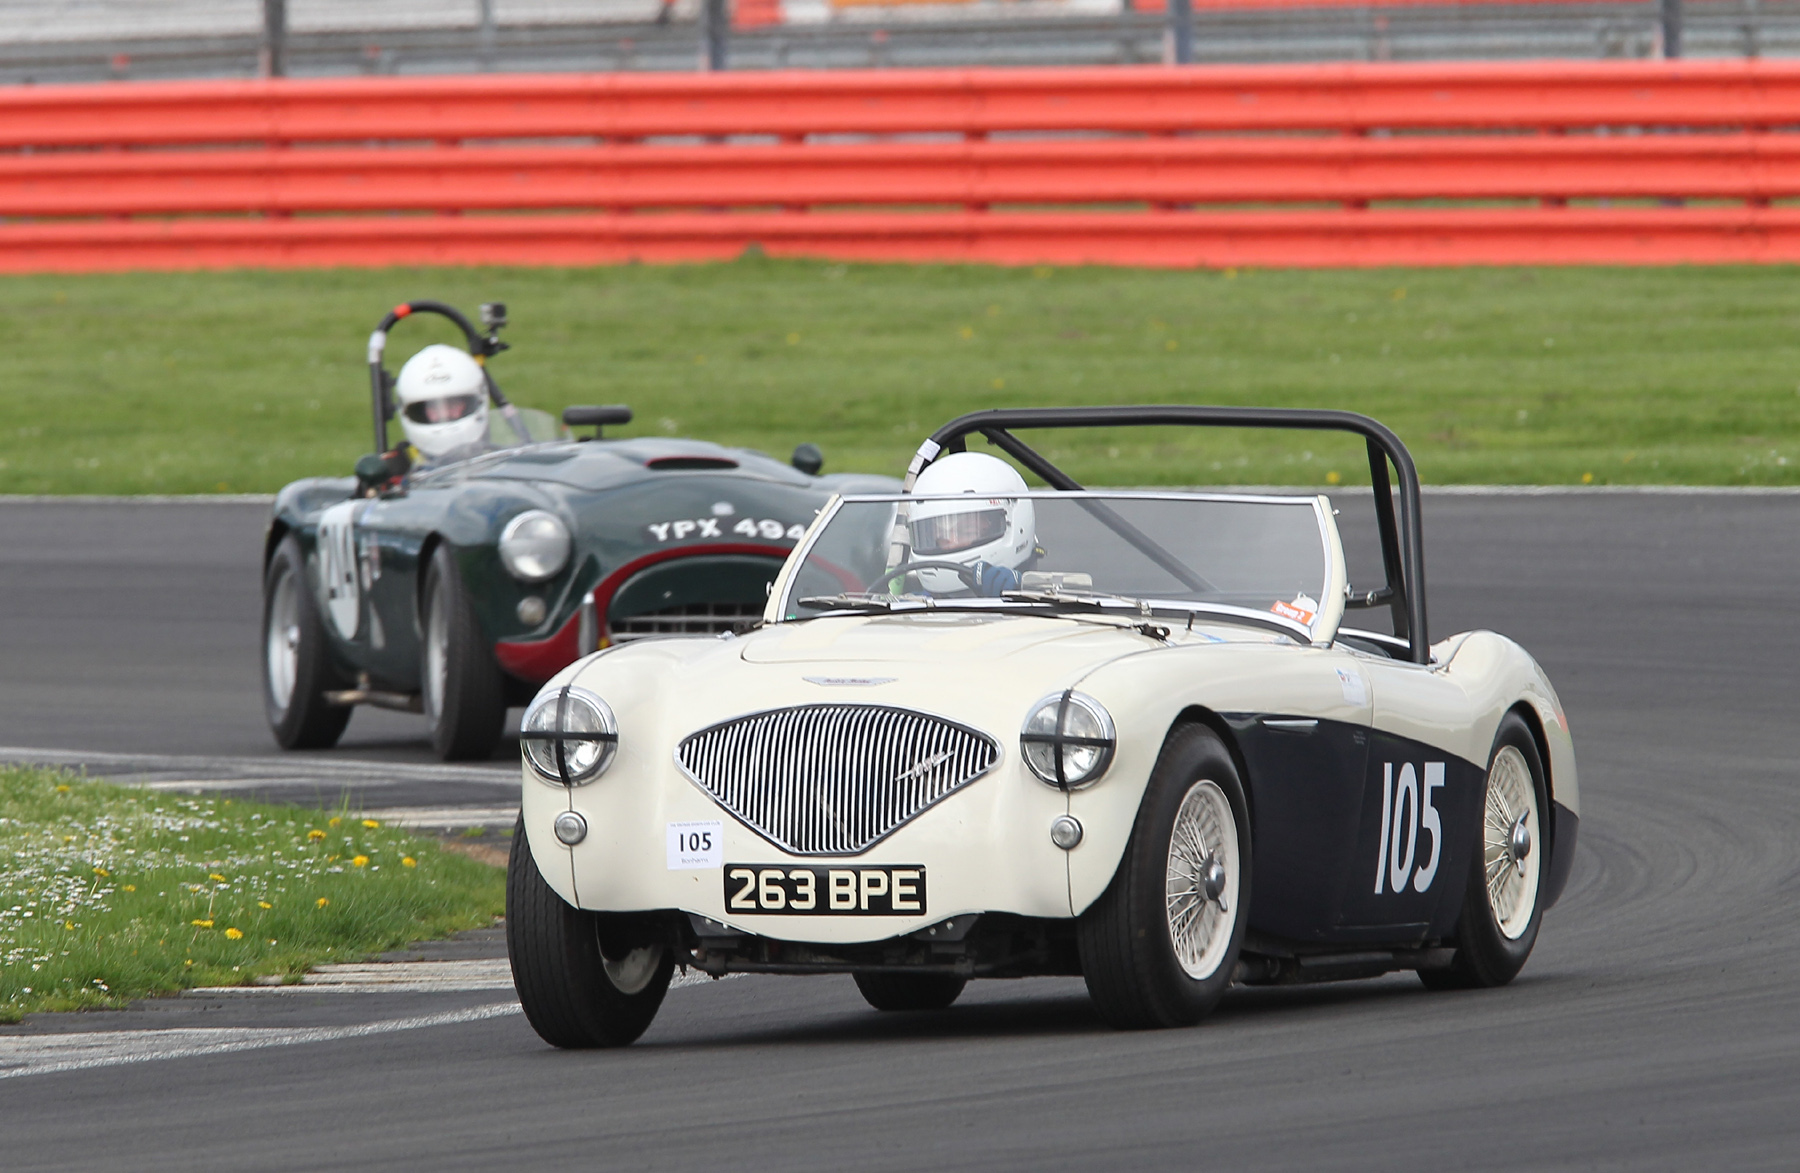 Matthew Collings presses on in his very standard Austin Healey 100M but is about to be lapped by Tim Pearce inn his AC Ace Bristol    Photo - Mick Walker